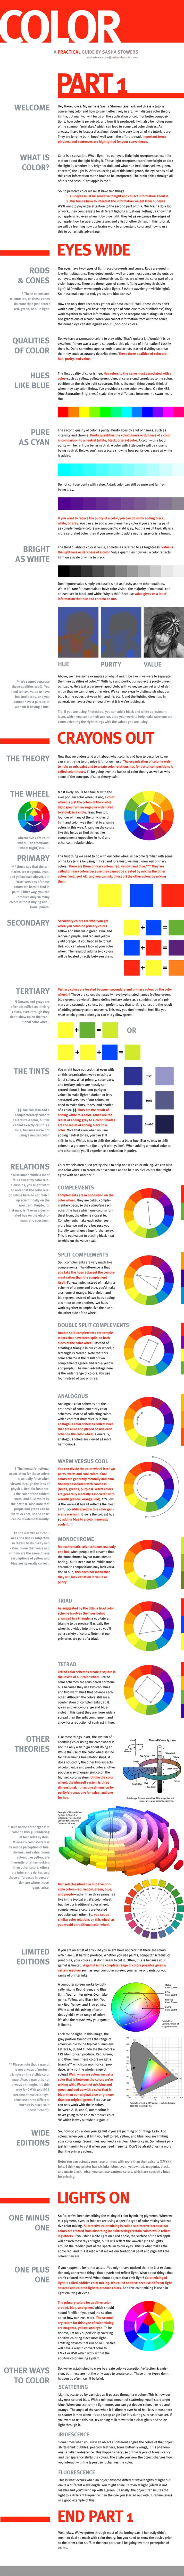 The Color Tutorial - Part 1 by ~sashas on deviantART